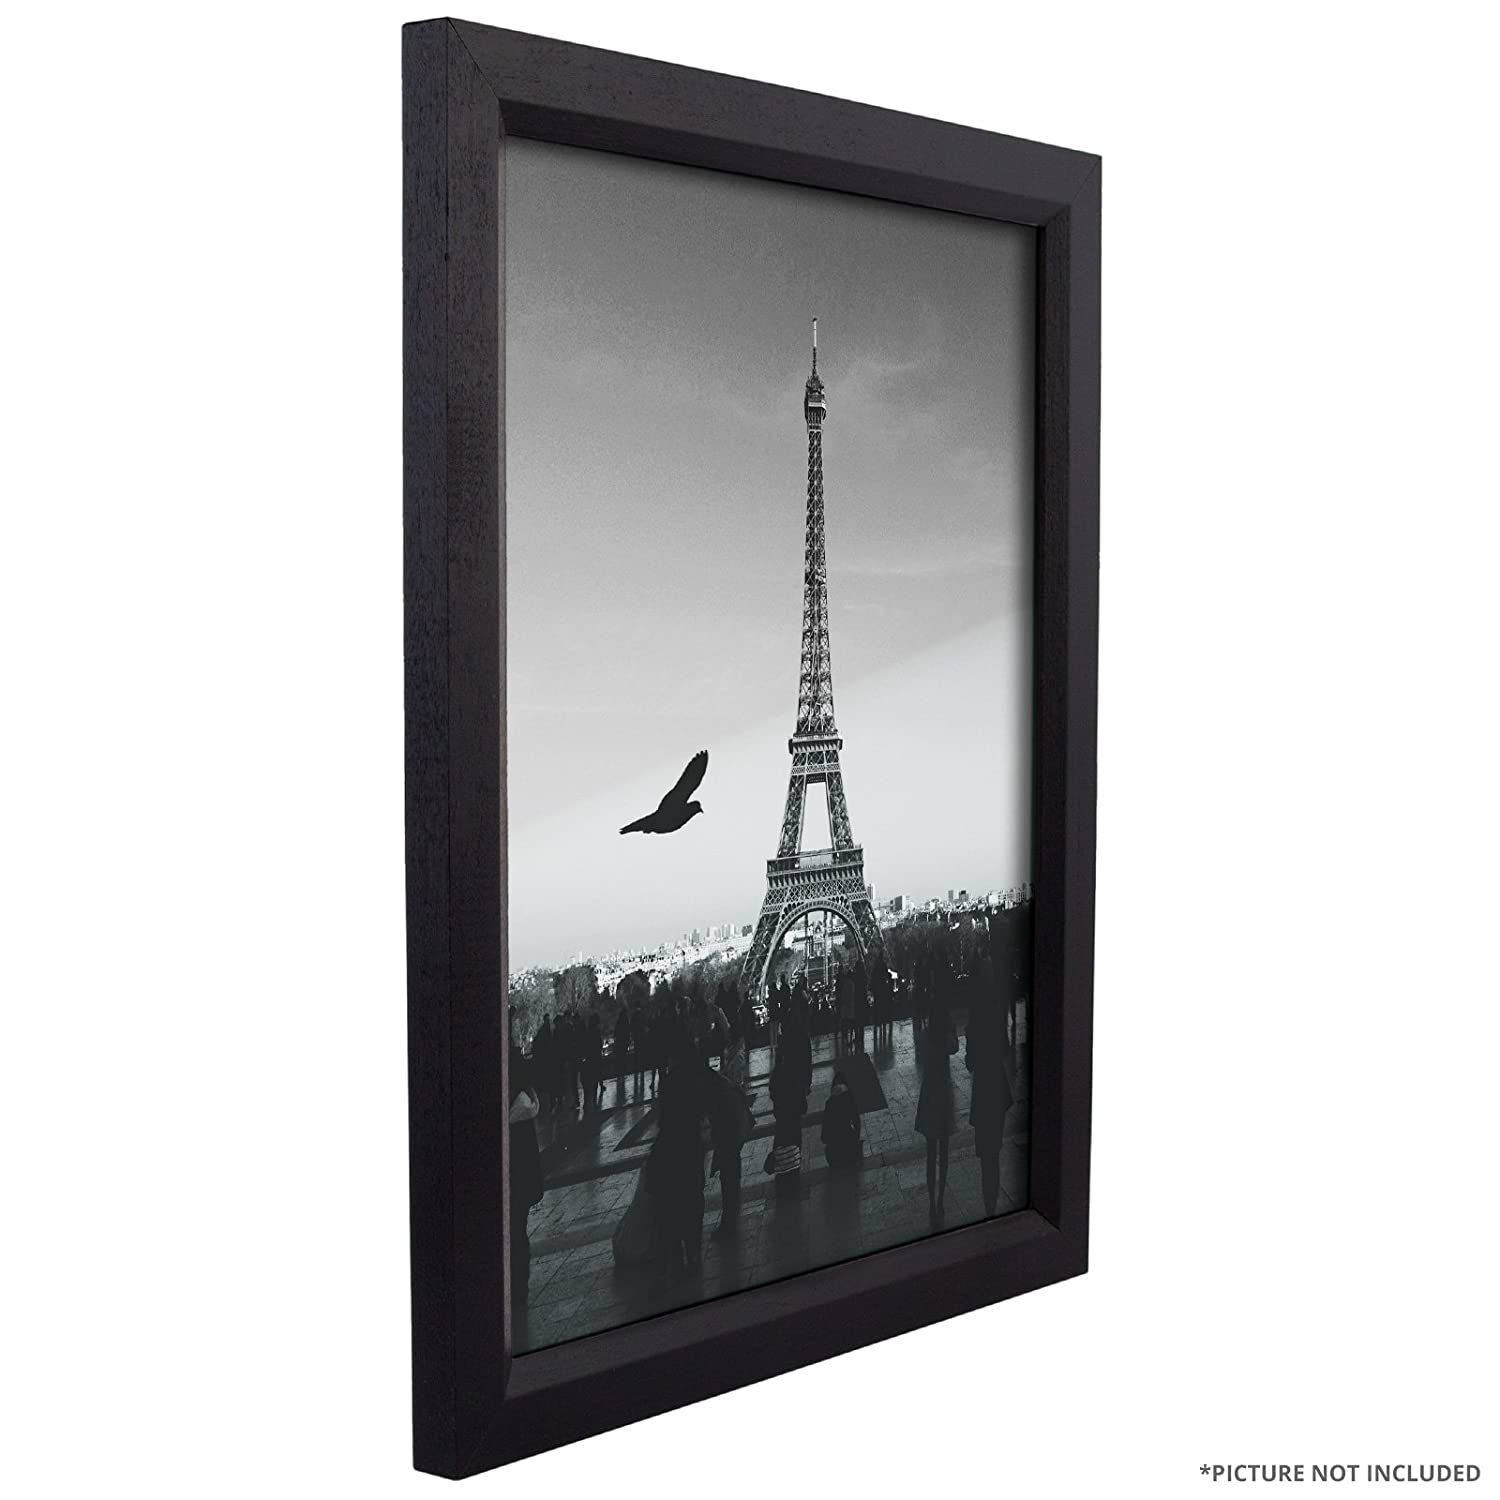 Poster Frame 22 inch X 34 inch Solid Wood Black: Amazon.ca: Home ...